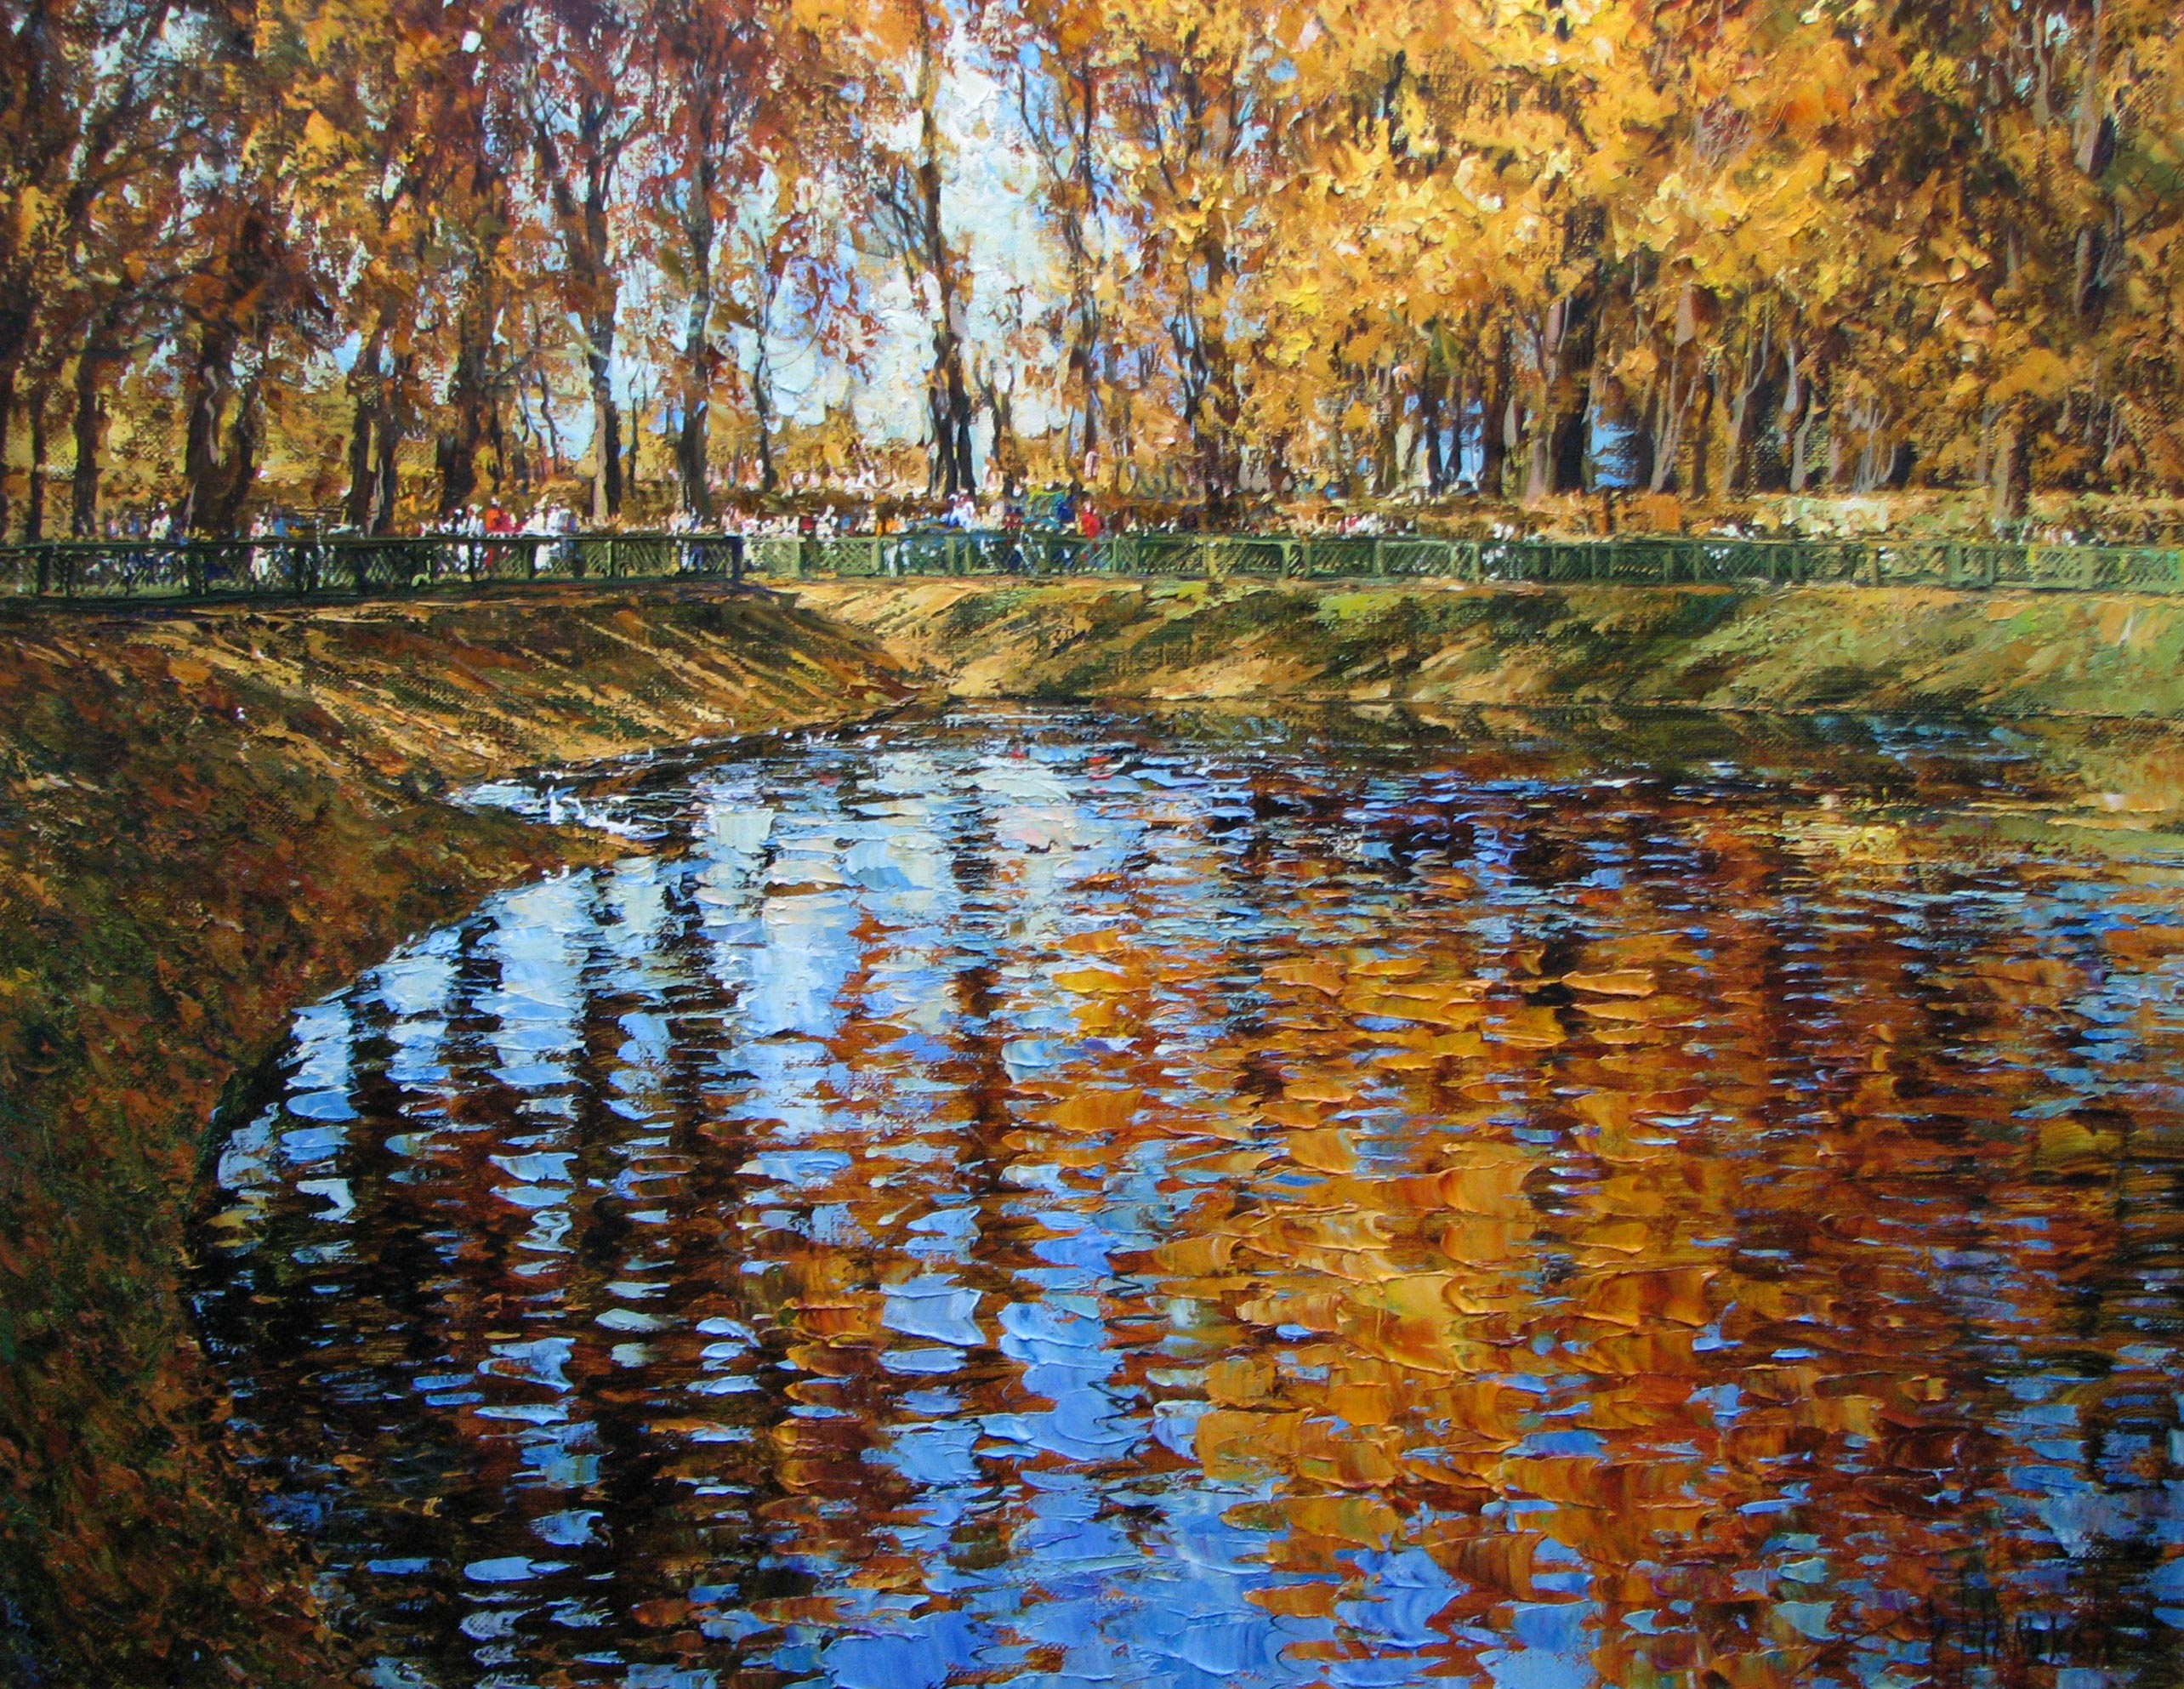 Pond in the Summer garden, Kirill Malkov, Buy the painting Oil